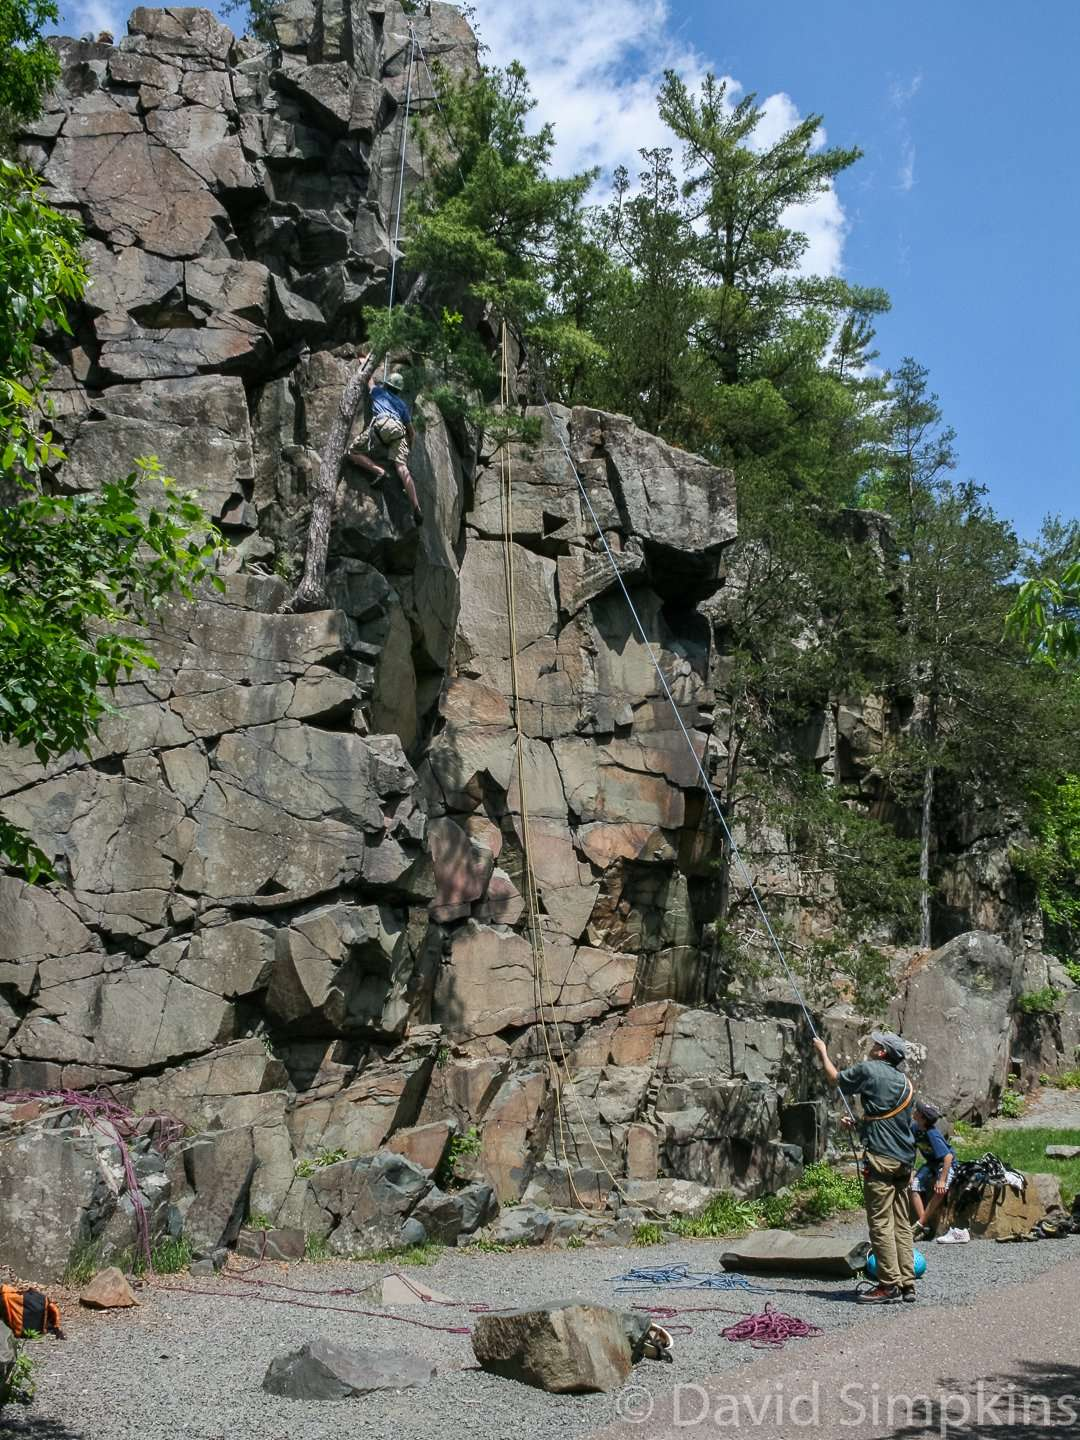 Tourist Rock is a popular climbing destination at Interstate State Park